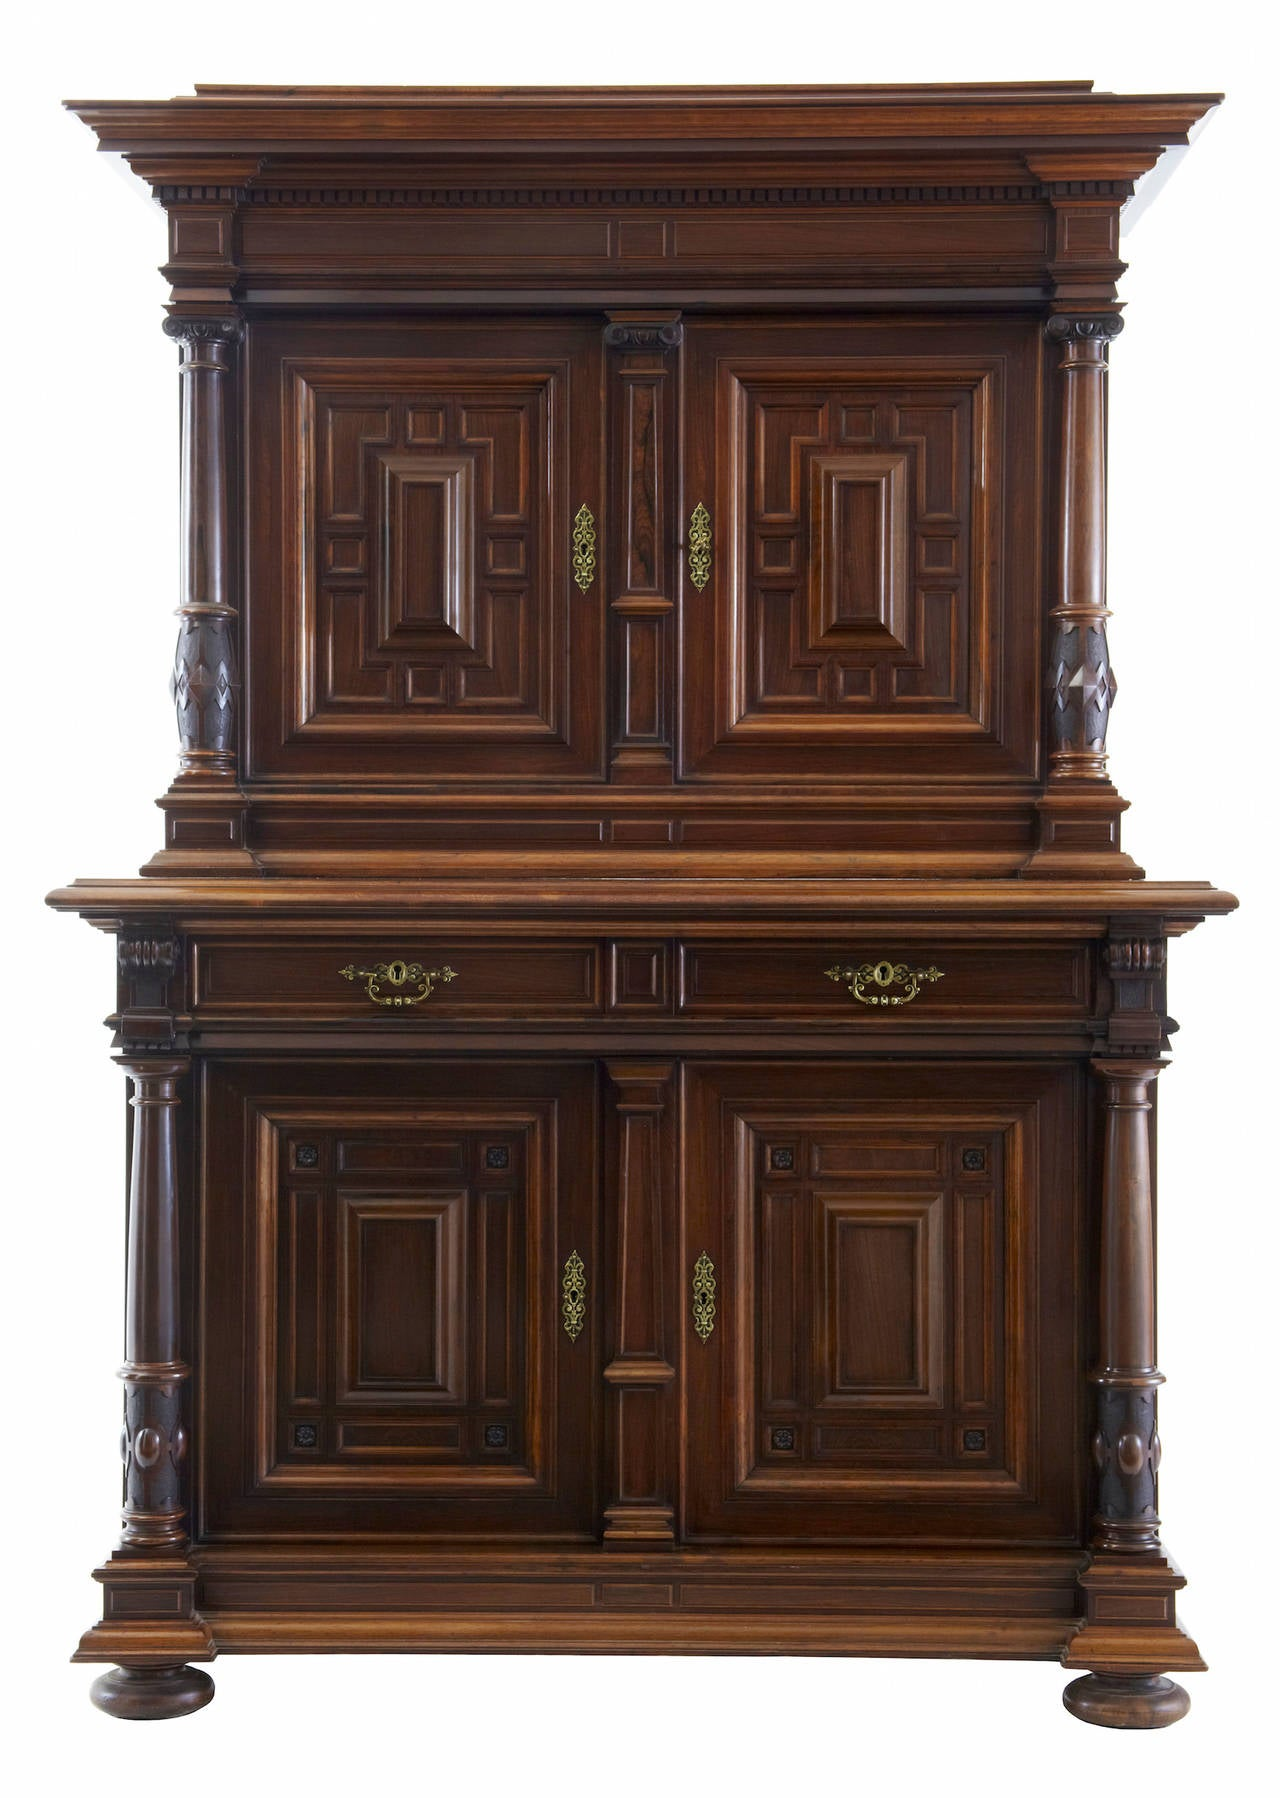 19th century Italian rosewood baroque style cupboard Fine quality baroque influenced cupboard, circa 1890. Substantial statement piece unusually made in rosewood. Comprising of two sections, top section double doors open to two shelves, over two